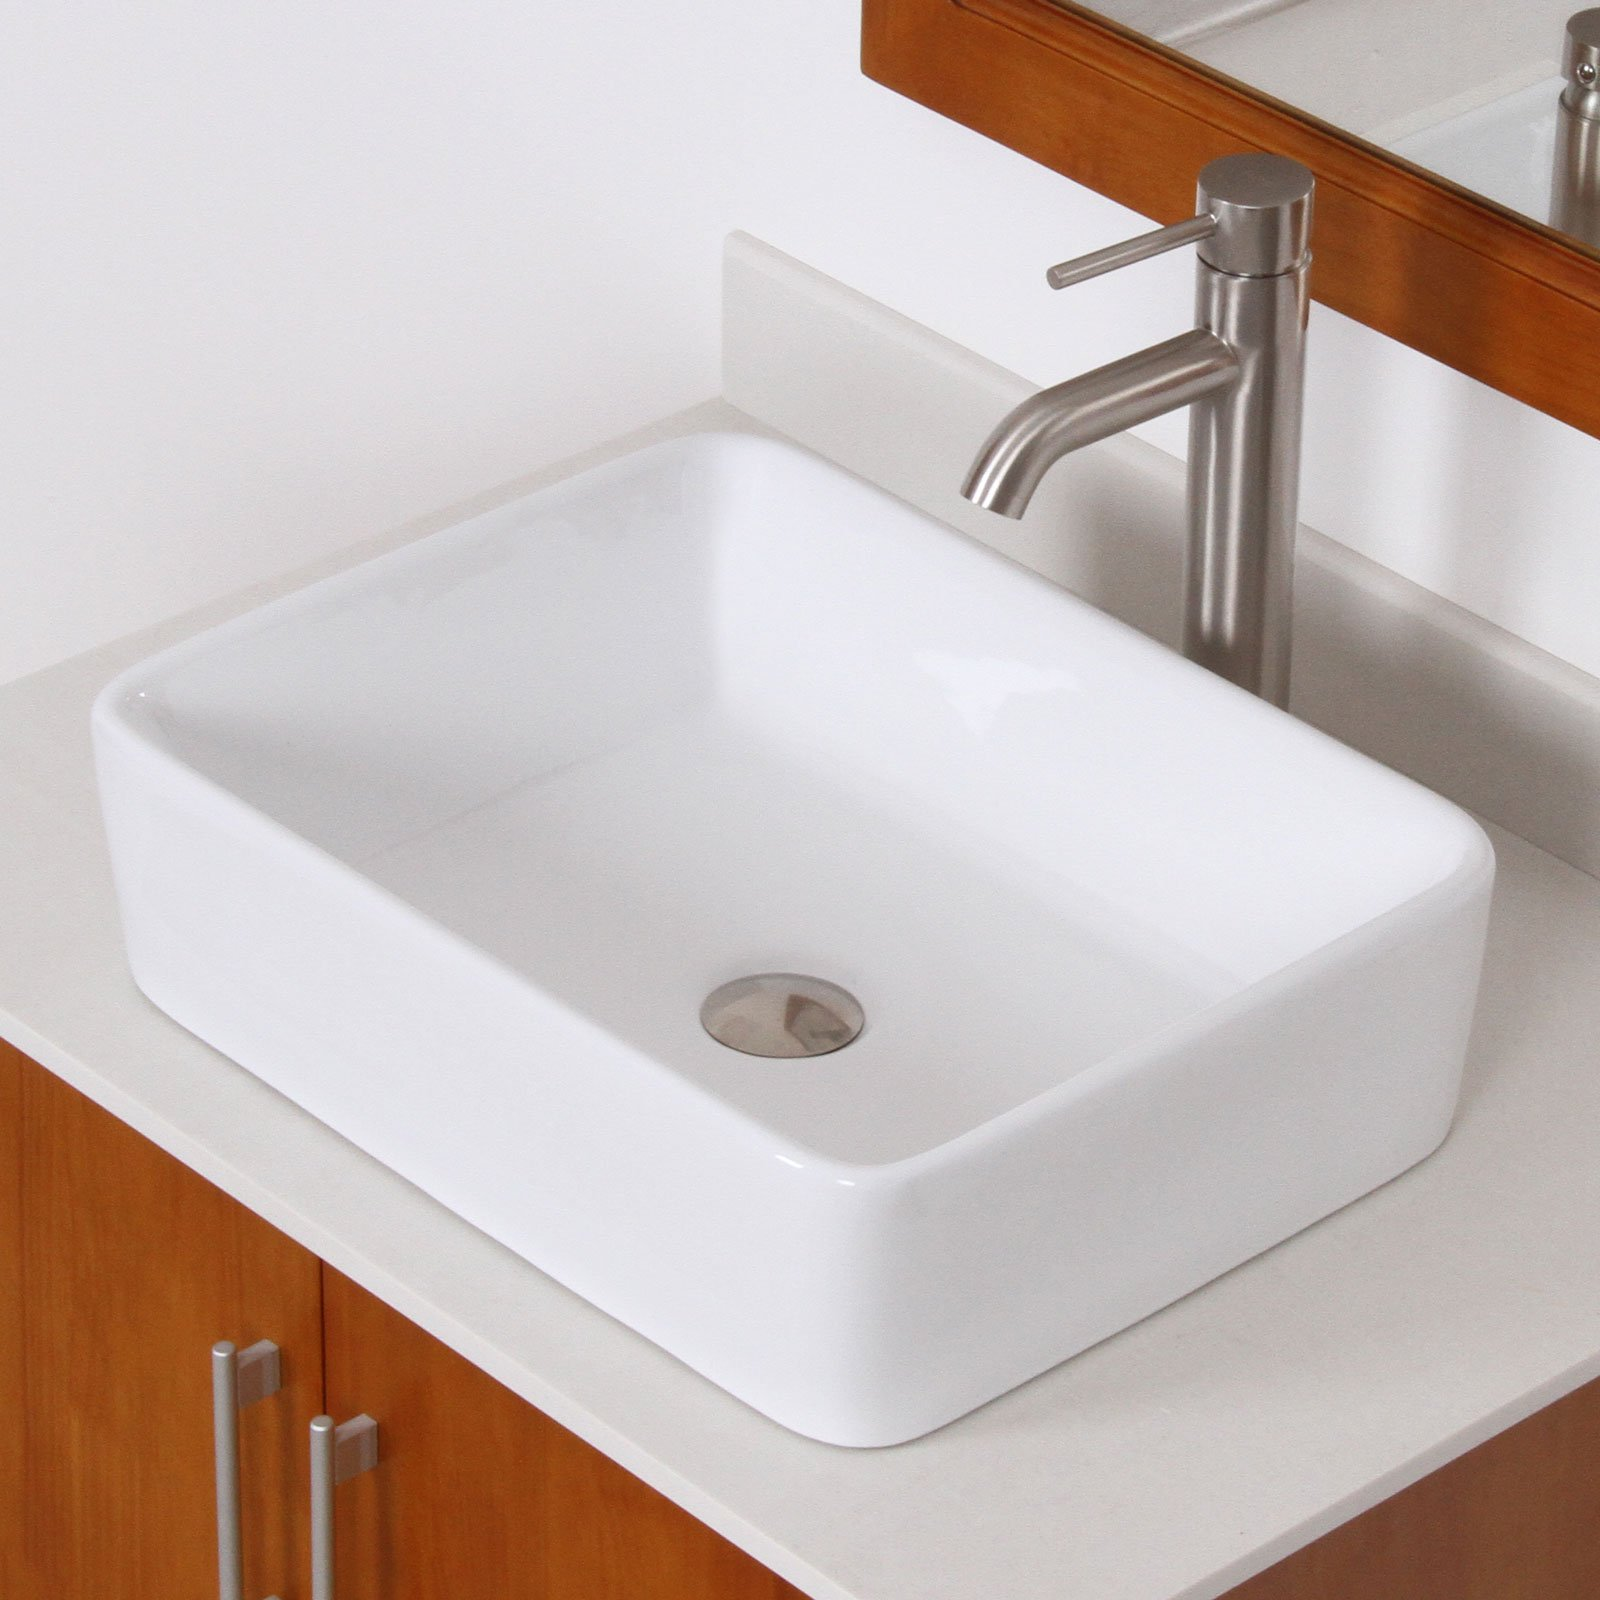 Elite Grade a Rectangular Shaped Basin Ceramic Vessel Sink and Tall Luxury Single Handle Lever Brushed Nickel Faucet Combo - 9924+f371023bn